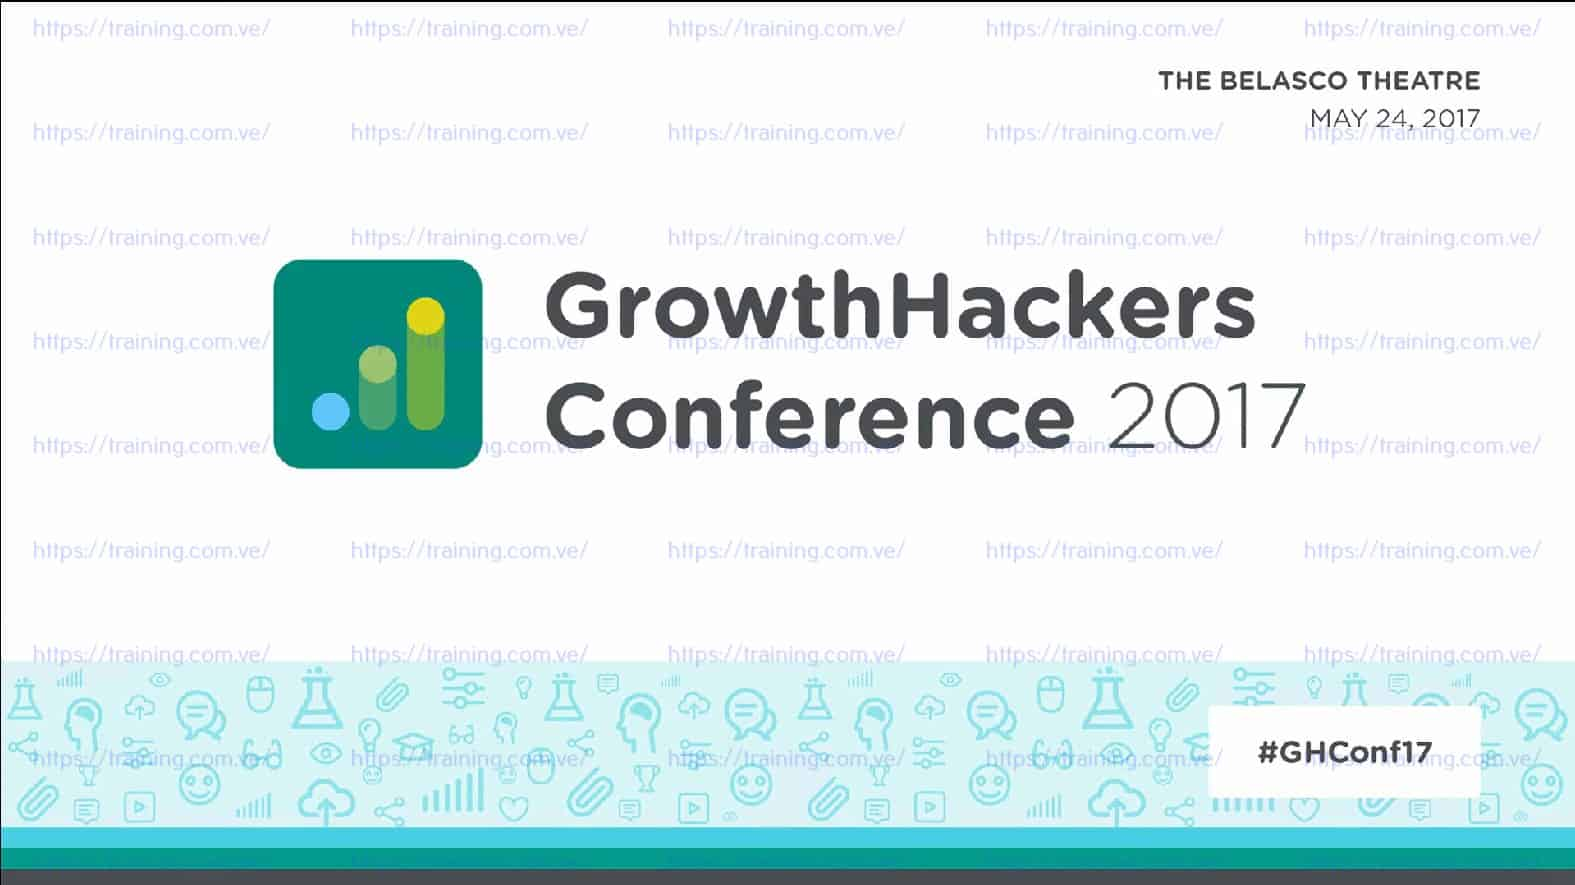 2017 GrowthHackers Conference Virtual Pass free